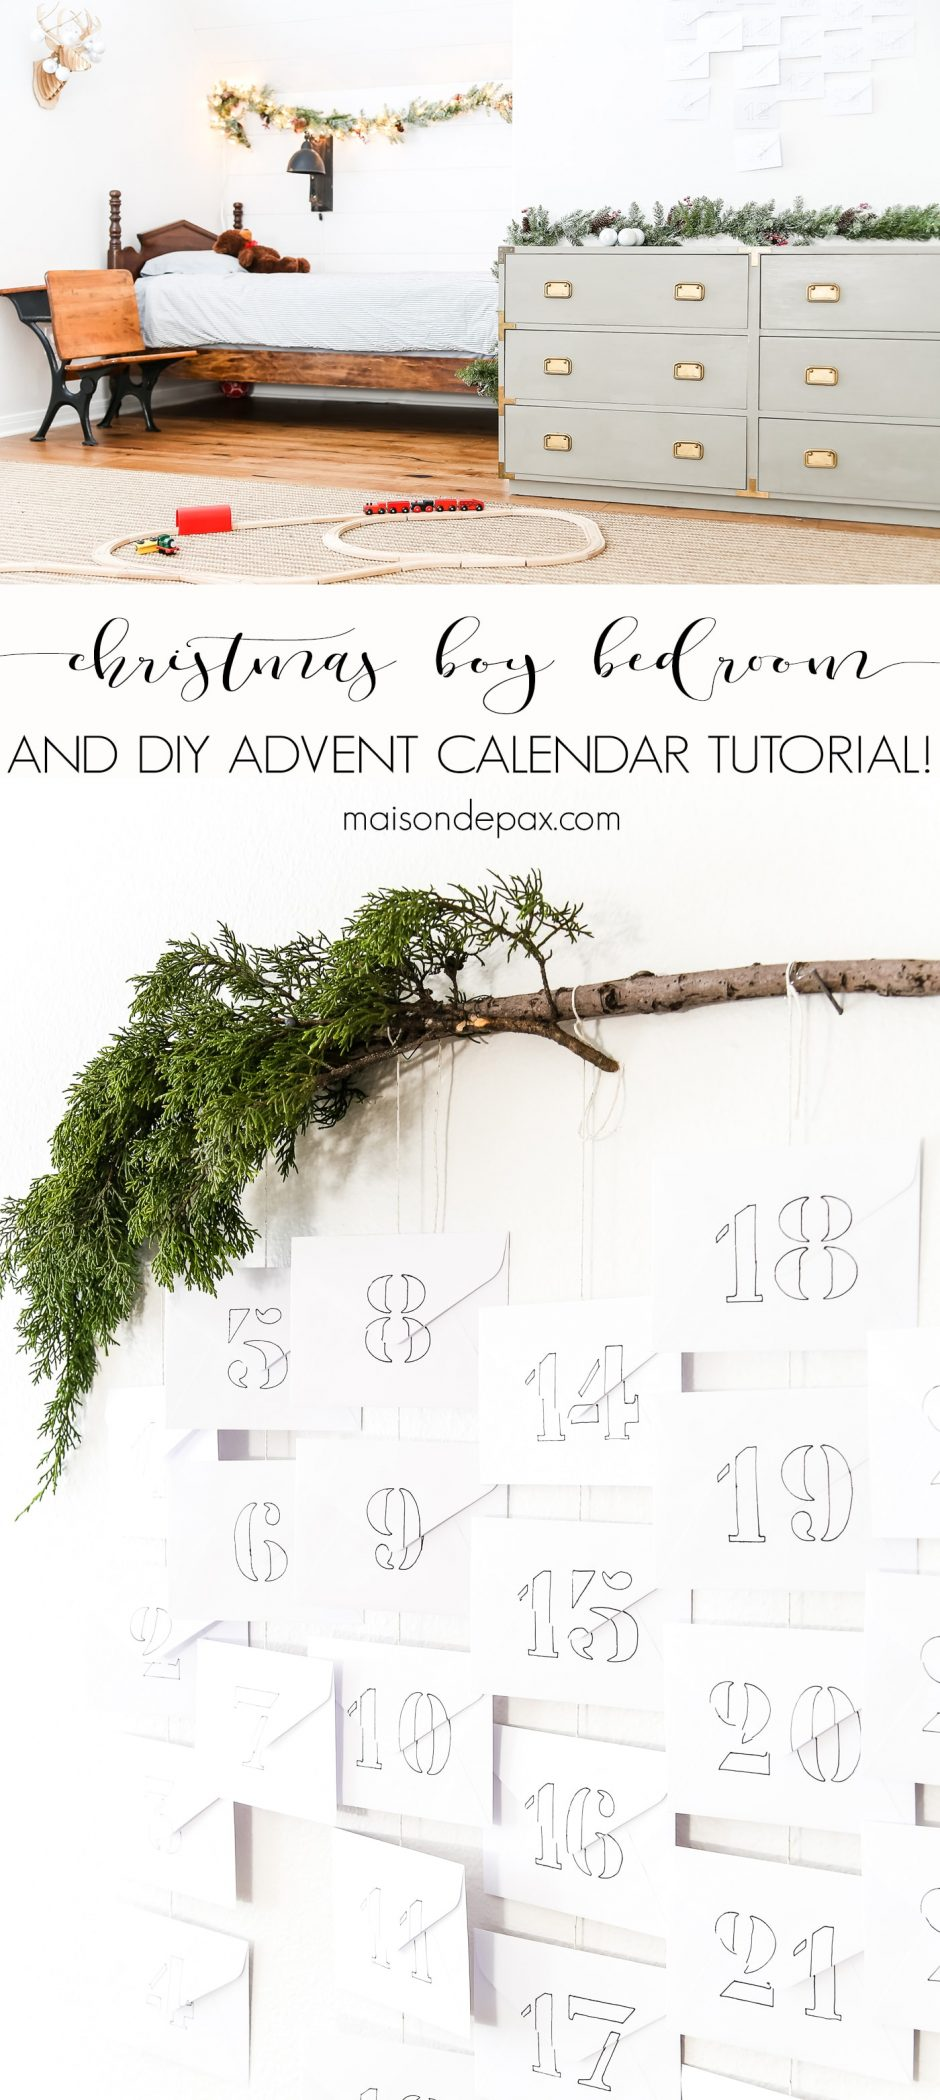 Want to make Christmas extra magical for your kids?  Bring some simple Christmas decor into their space.  This diy advent calendar and kids' simple Christmas bedroom is perfect for the holidays! #diyadventcalendar